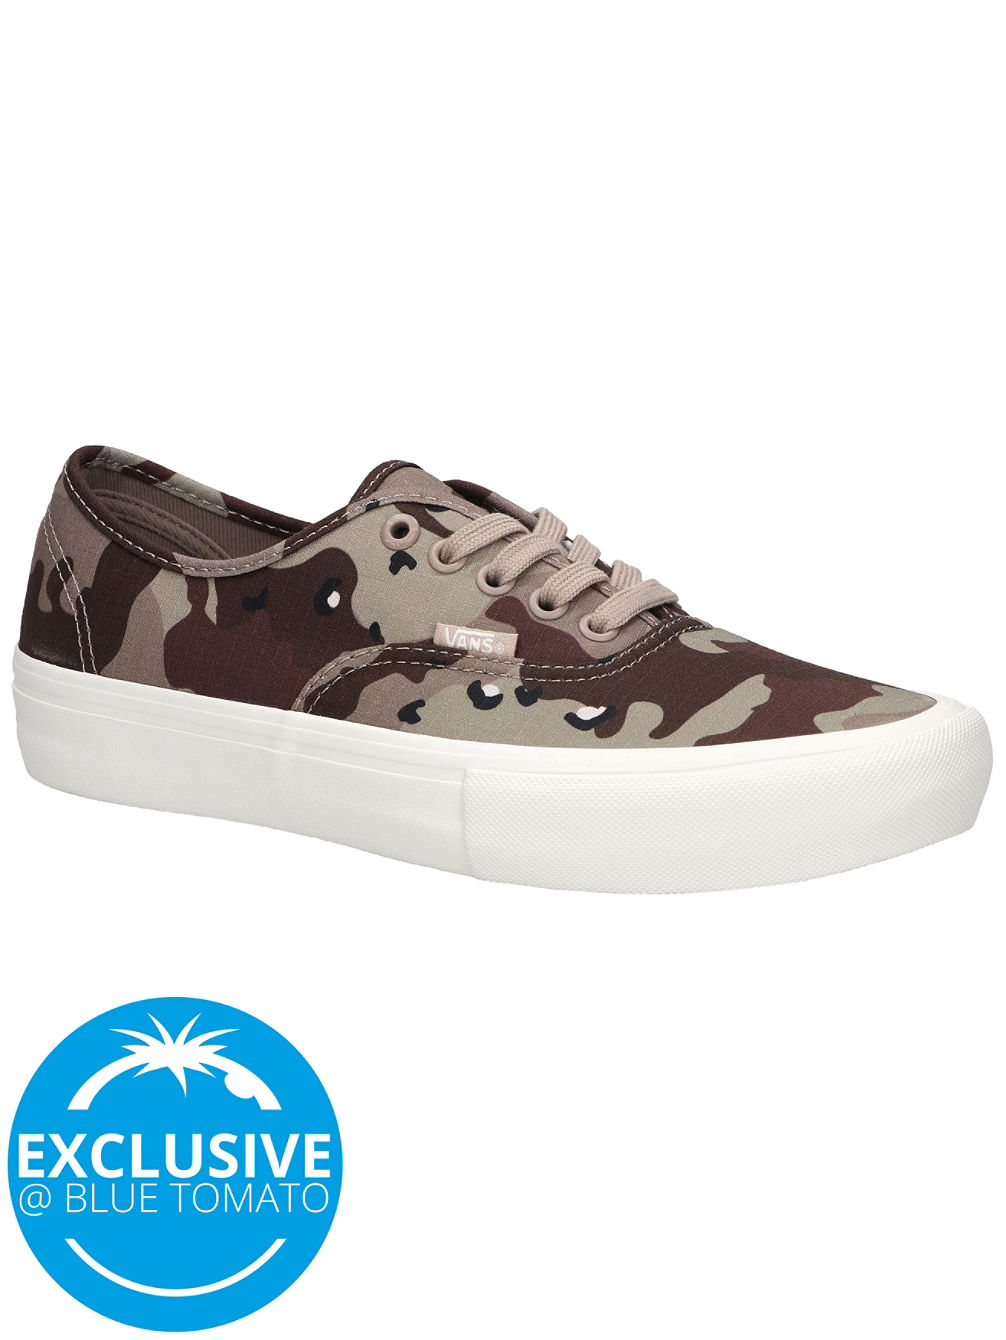 Desert Camo Authentic Pro Skateschuhe